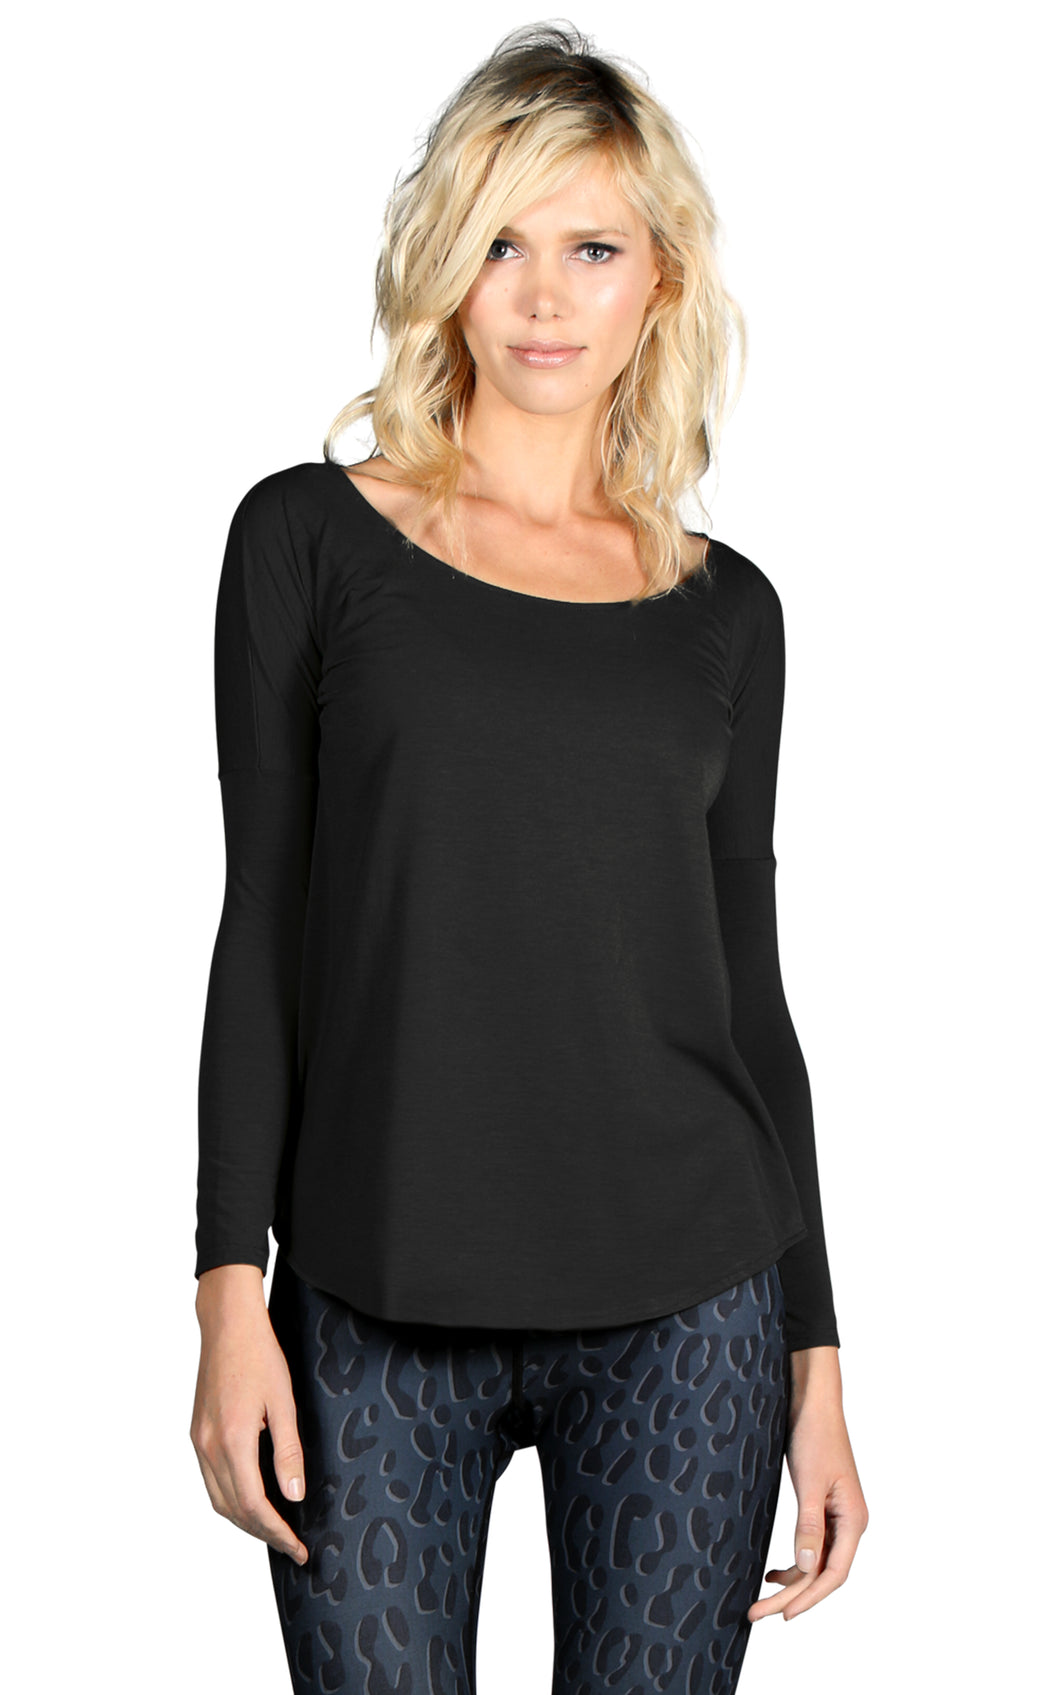 PERFORMANCE CASHMERE SCOOP NECK LONG SLEEVE